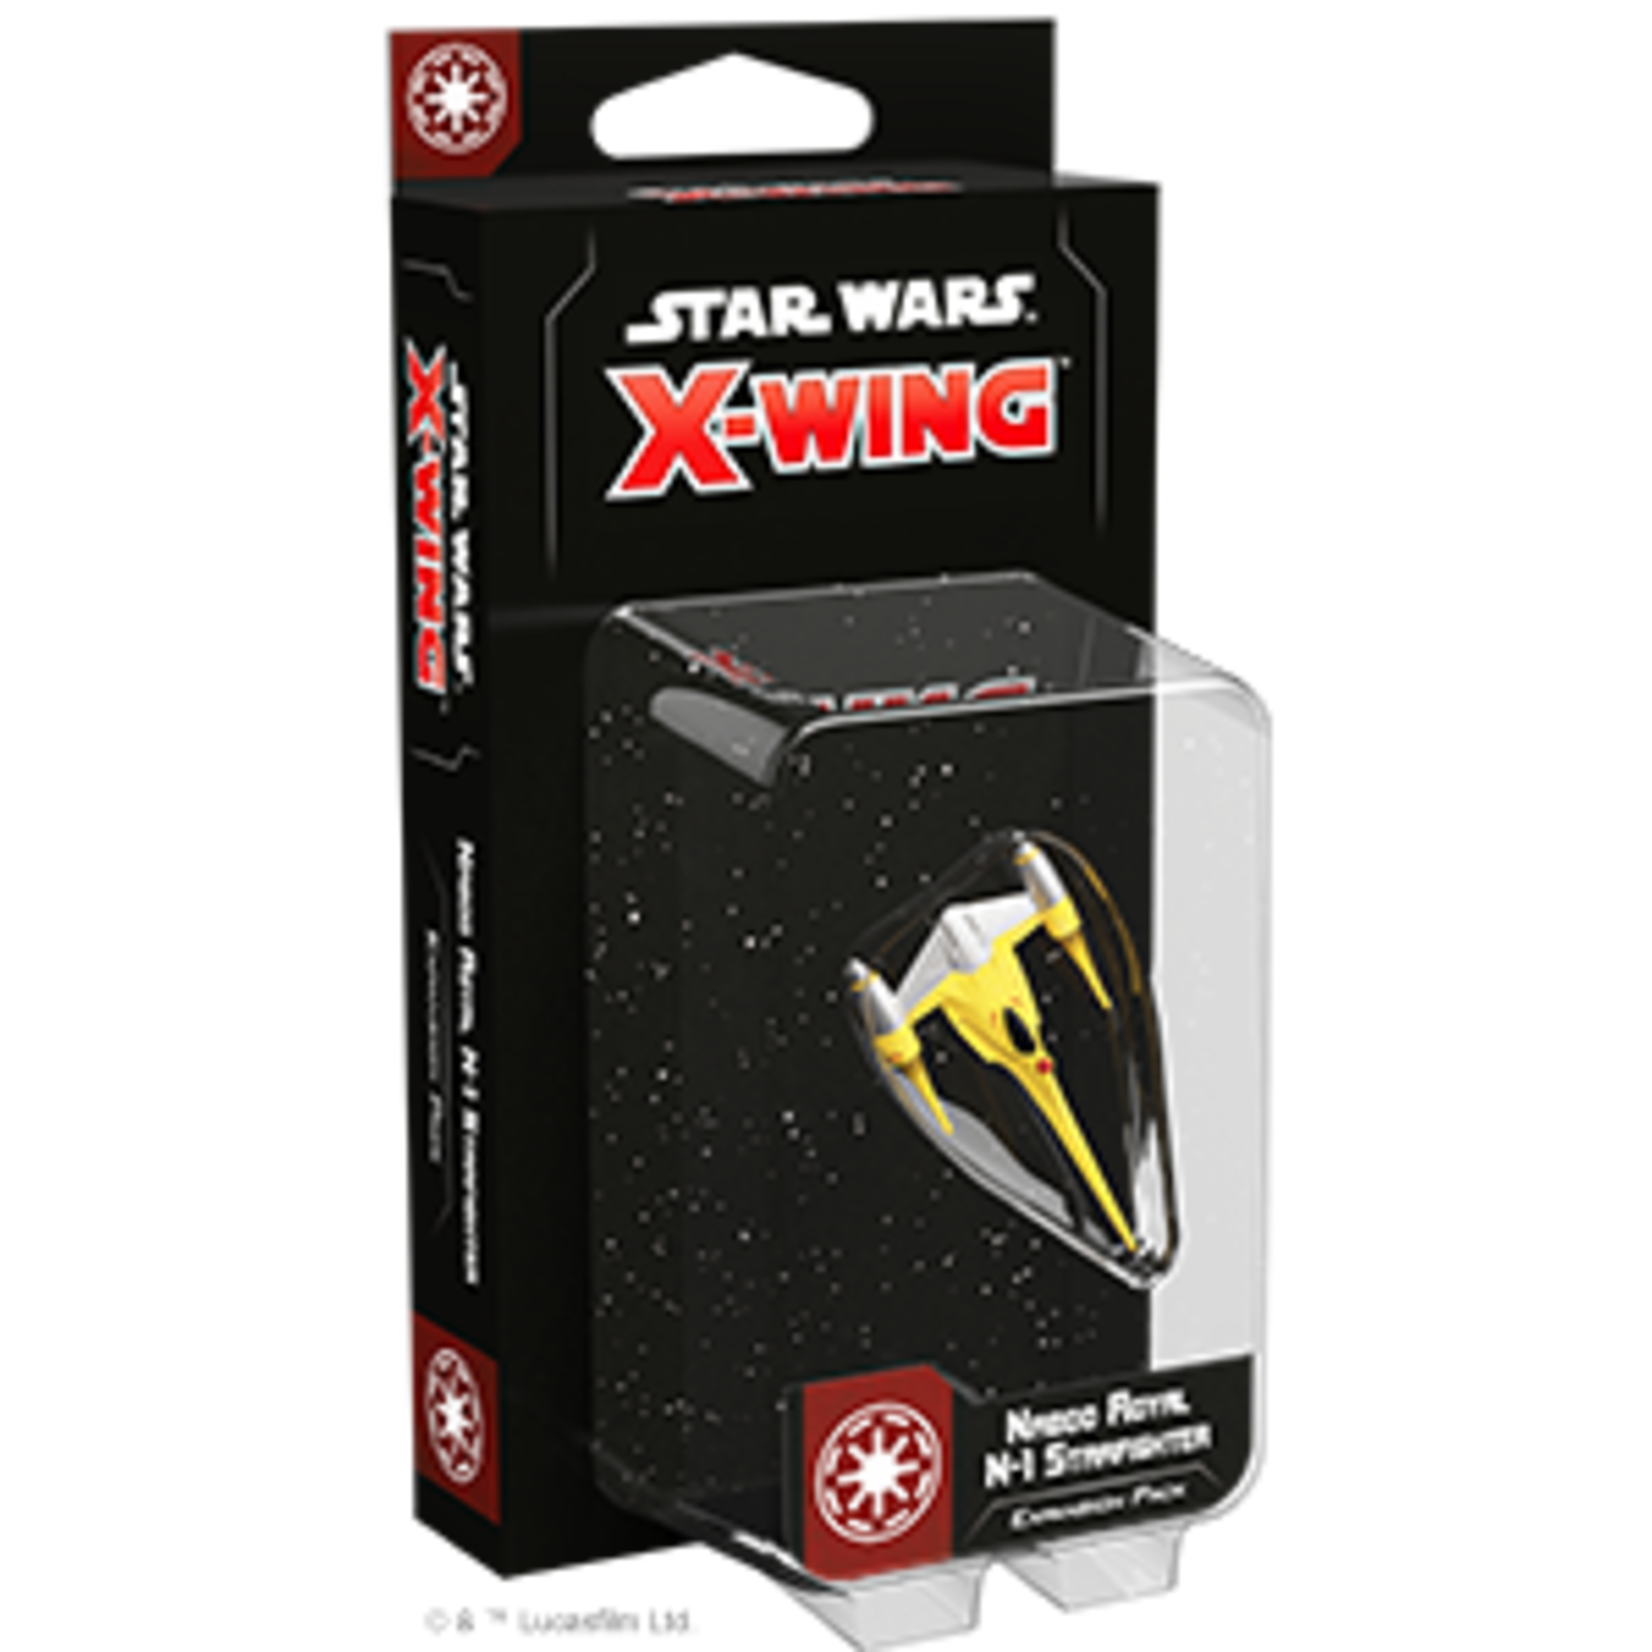 Star Wars X-Wing: 2nd Edition Naboo Royal N-1 Starfighter Expansion Pack